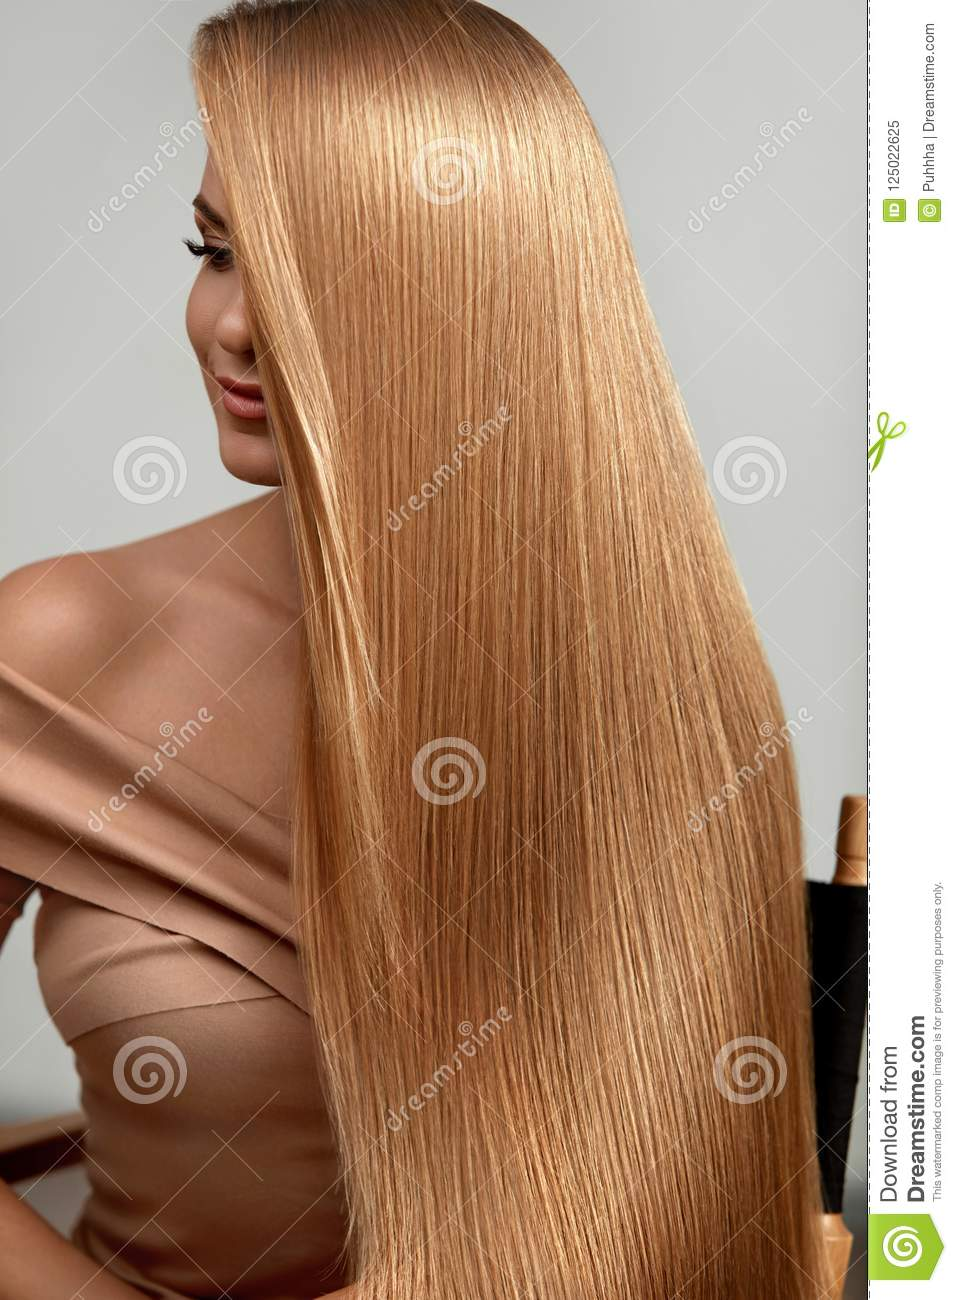 Long Blonde Hair Beautiful Woman With Healthy Straight Hair